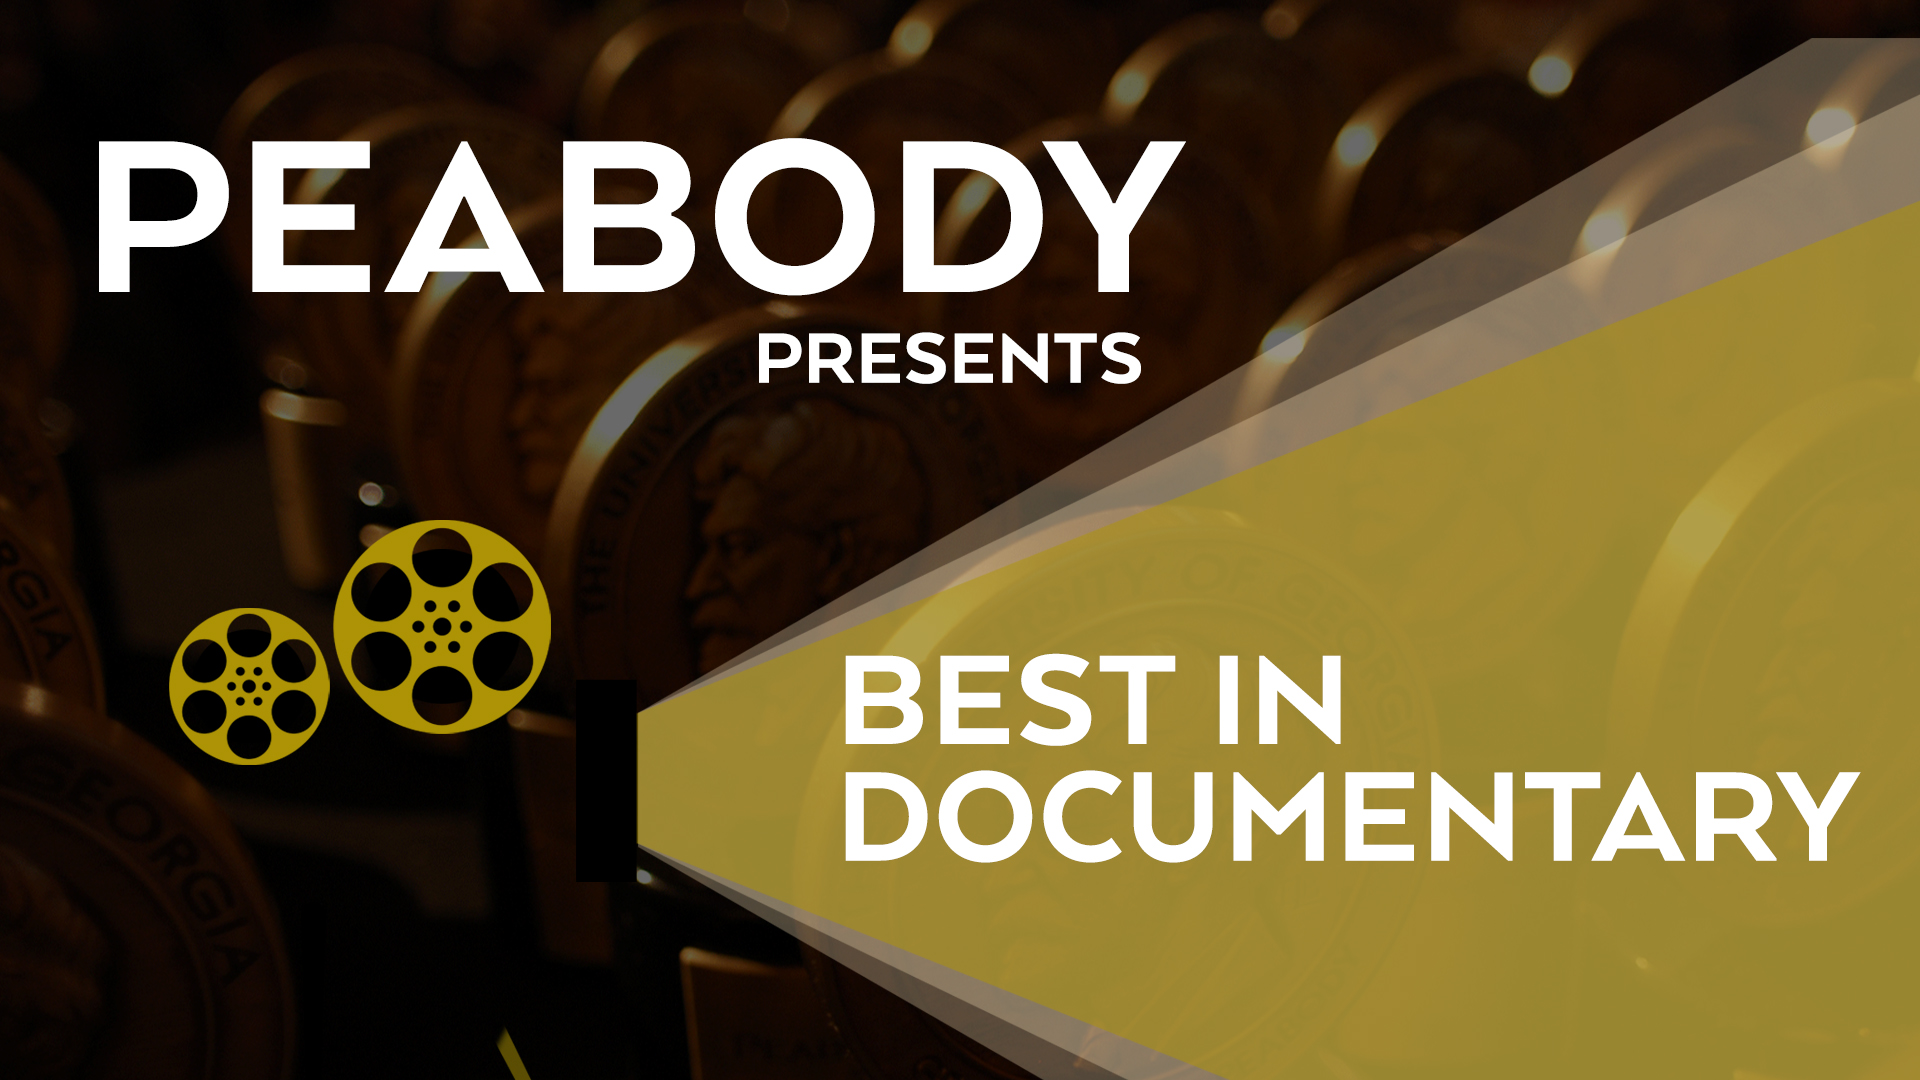 Peabody Awards, PBS to host documentary discussion